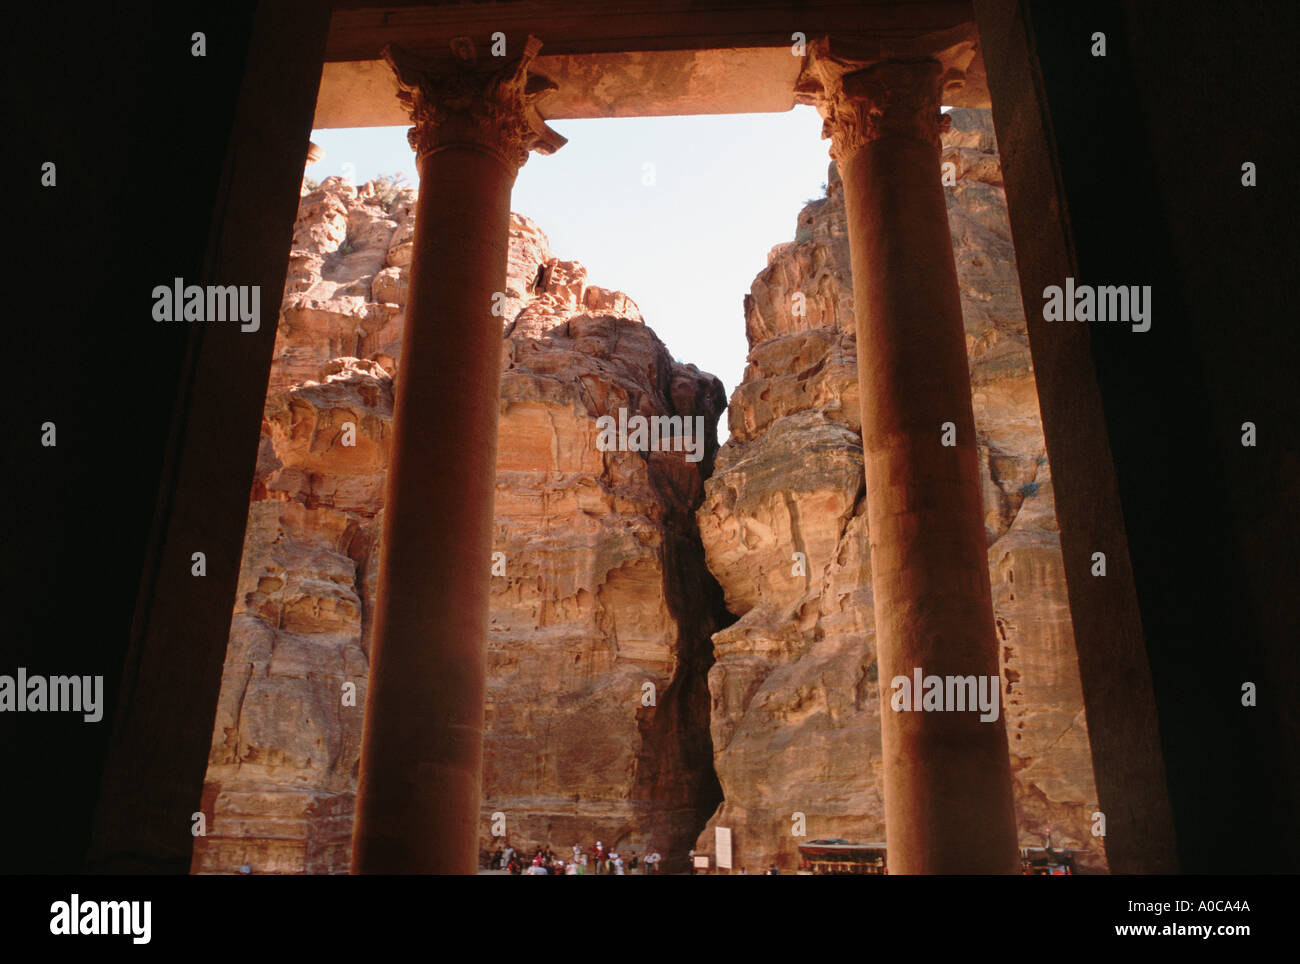 PETRA inside the AL KHAZNEH the treasury at the end of the SIQ rose red rose red city hall house most famous attraction - Stock Image